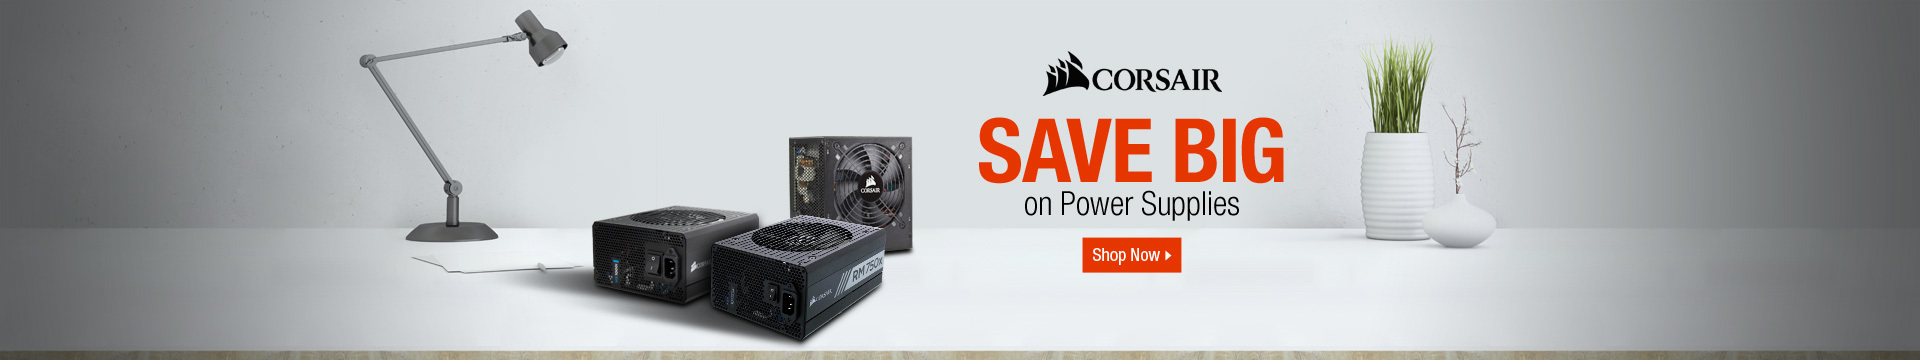 Save Big on Power Supplies